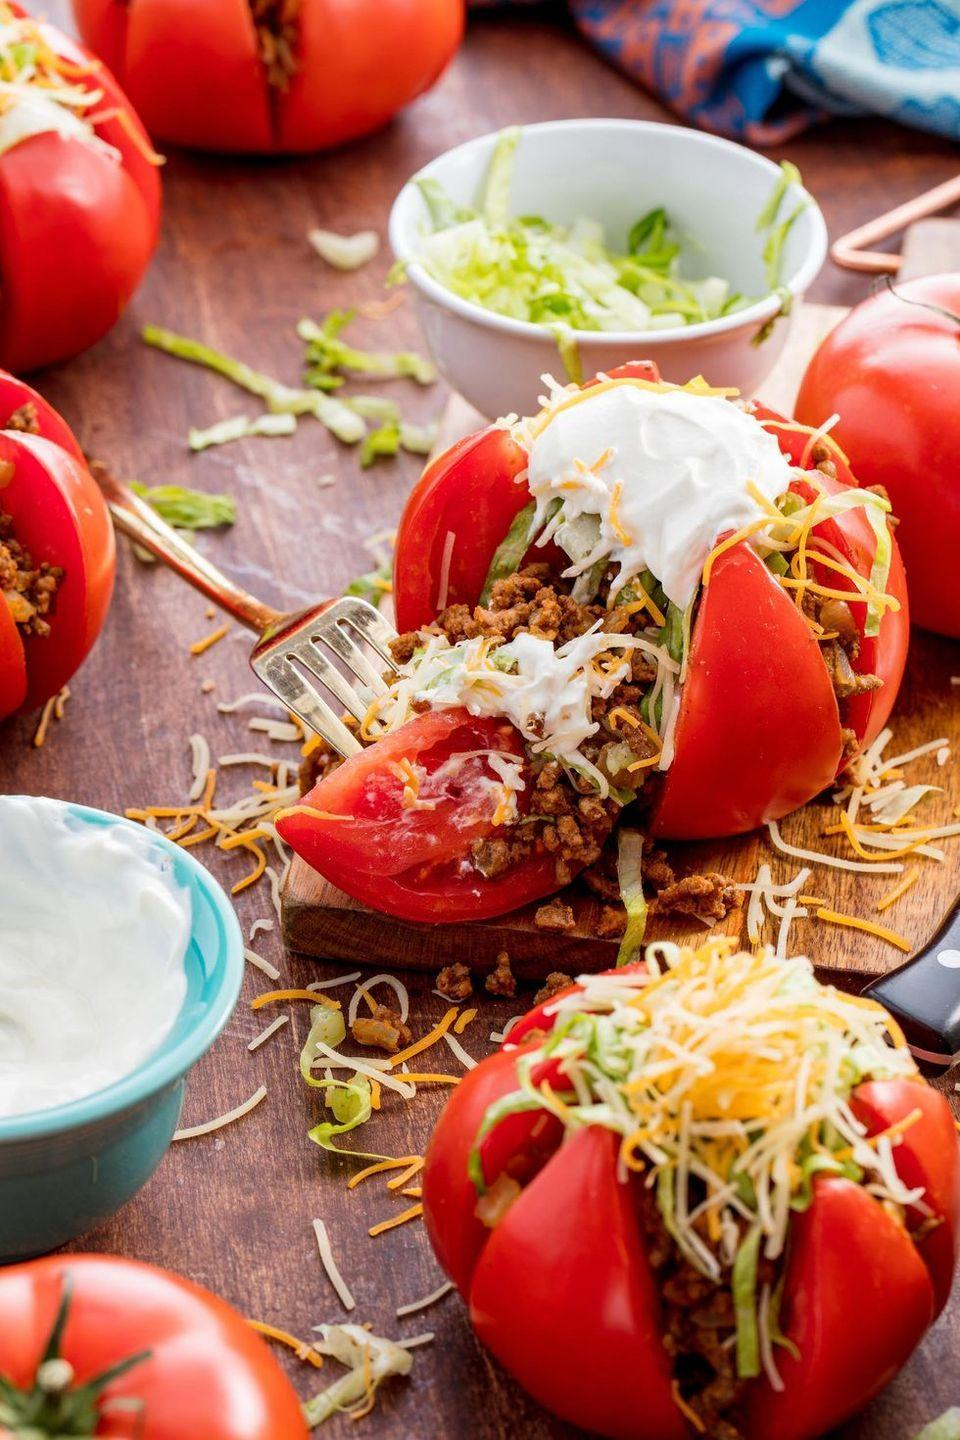 "<p>We're all for a genius low carb hack — and these tomatoes totally deliver. We had never thought to stuff them with taco meat, cheese, and sour cream, but we'll do anything in the name of ditching a tortilla for a low carb meal.</p><p>Get the <a href=""https://www.delish.com/uk/cooking/recipes/a30053026/taco-tomatoes-recipe/"" rel=""nofollow noopener"" target=""_blank"" data-ylk=""slk:Taco Tomatoes"" class=""link rapid-noclick-resp"">Taco Tomatoes</a> recipe.</p>"